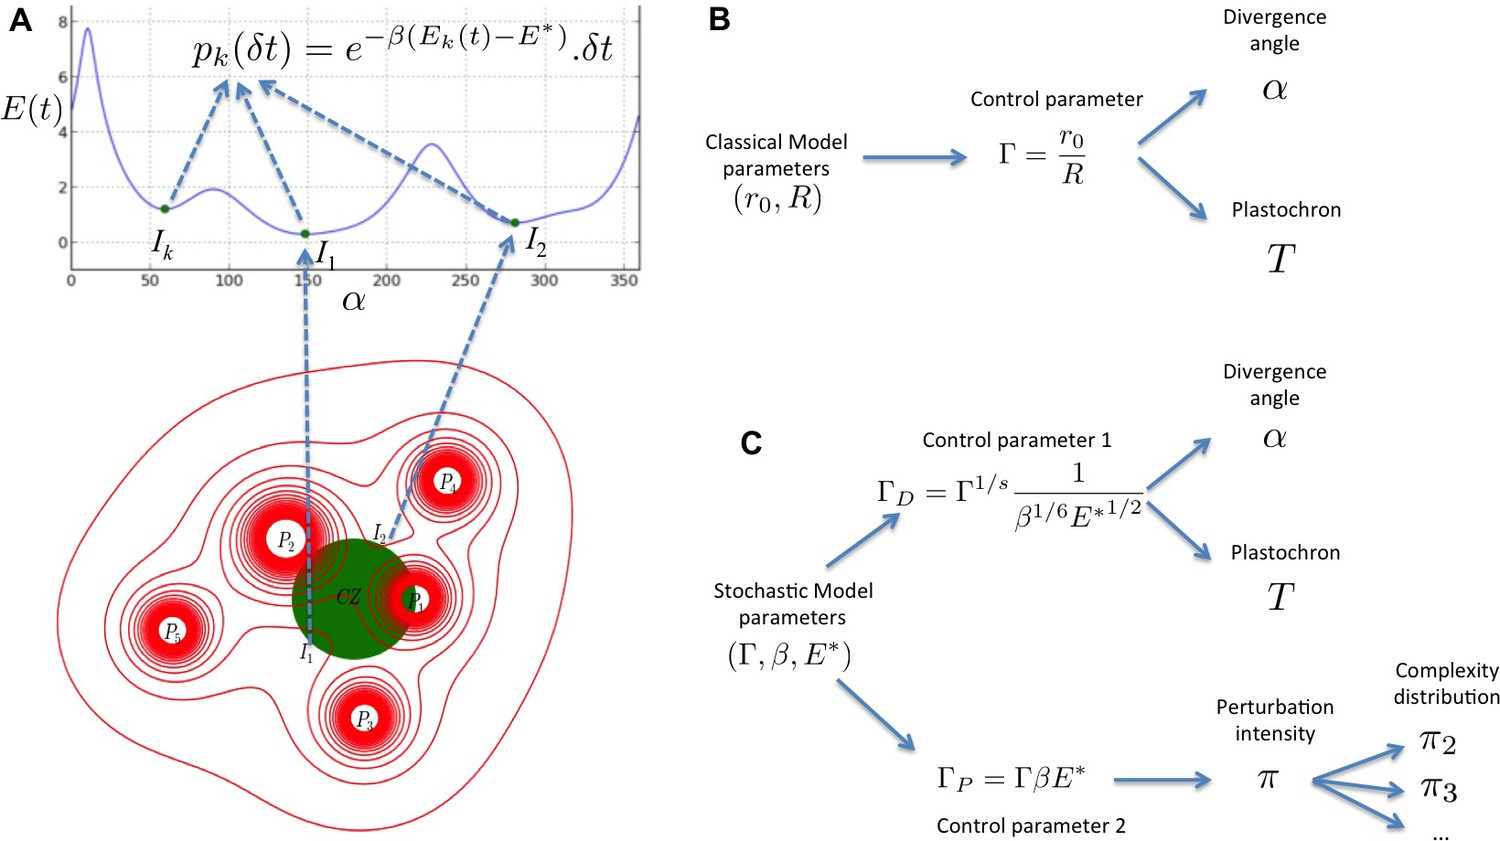 A Stochastic Multicellular Model Identifies Biological Watermarks Simple Eyeball Diagram 154 The Structure Of